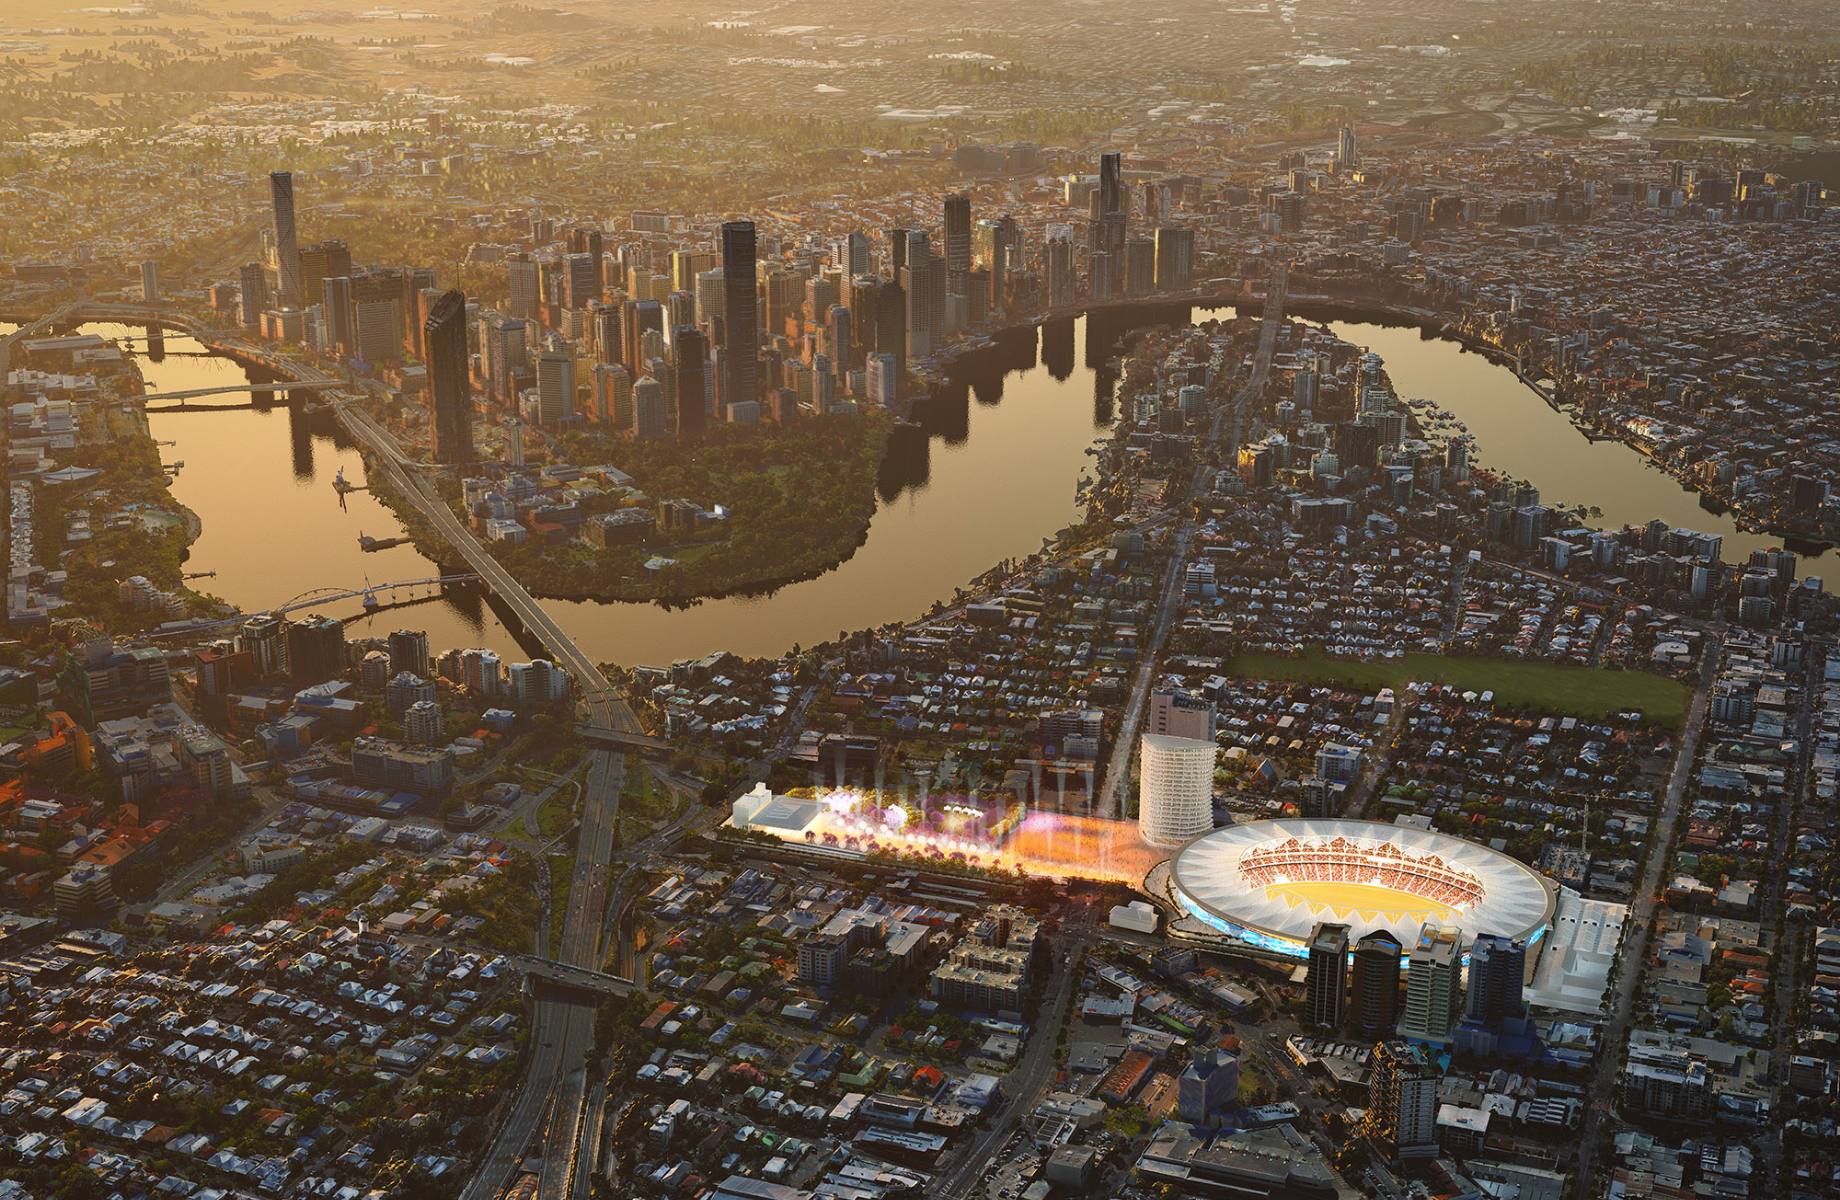 ▲ The Gabba will receive a $1bn facelift to boost its capacity and build a pedestrian precinct connecting to the Cross River Rail as part of the Olympic Games infrastructure projects.